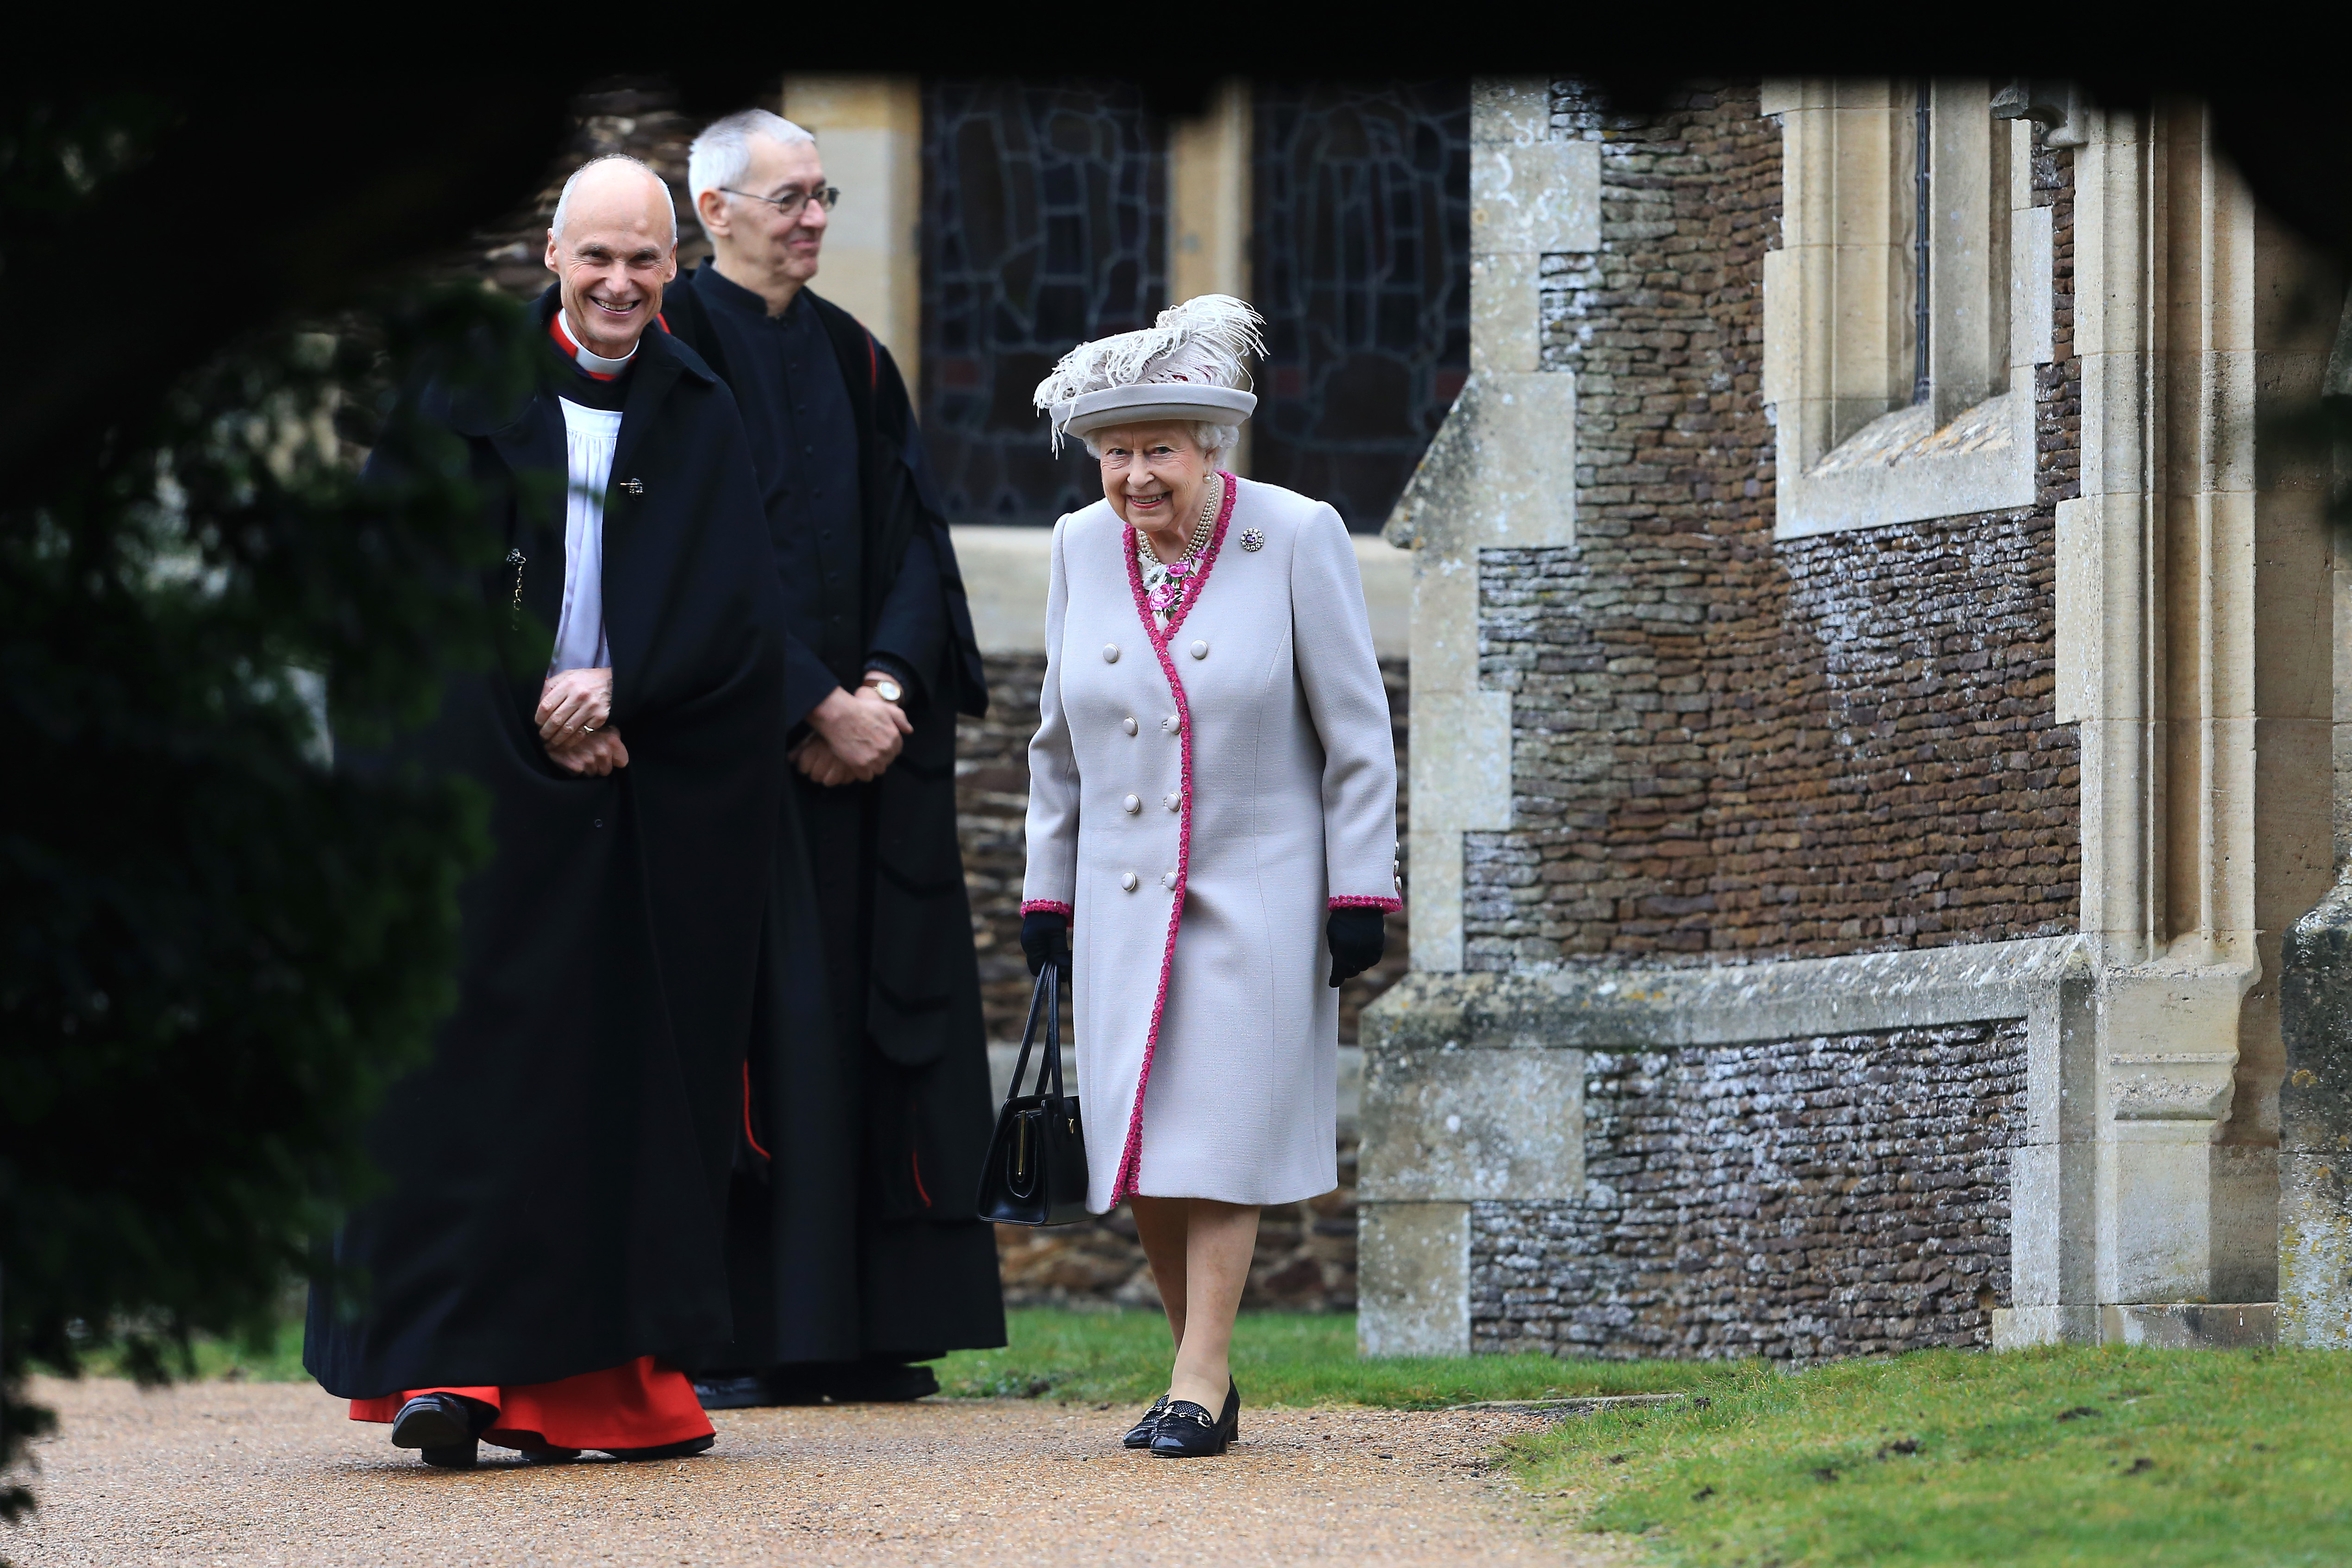 Queen Elizabeth II leaves after attending Christmas Day Church service at Church of St Mary Magdalene on the Sandringham estate on December 25, 2018 in King's Lynn, England. (Photo by Stephen Pond/Getty Images)